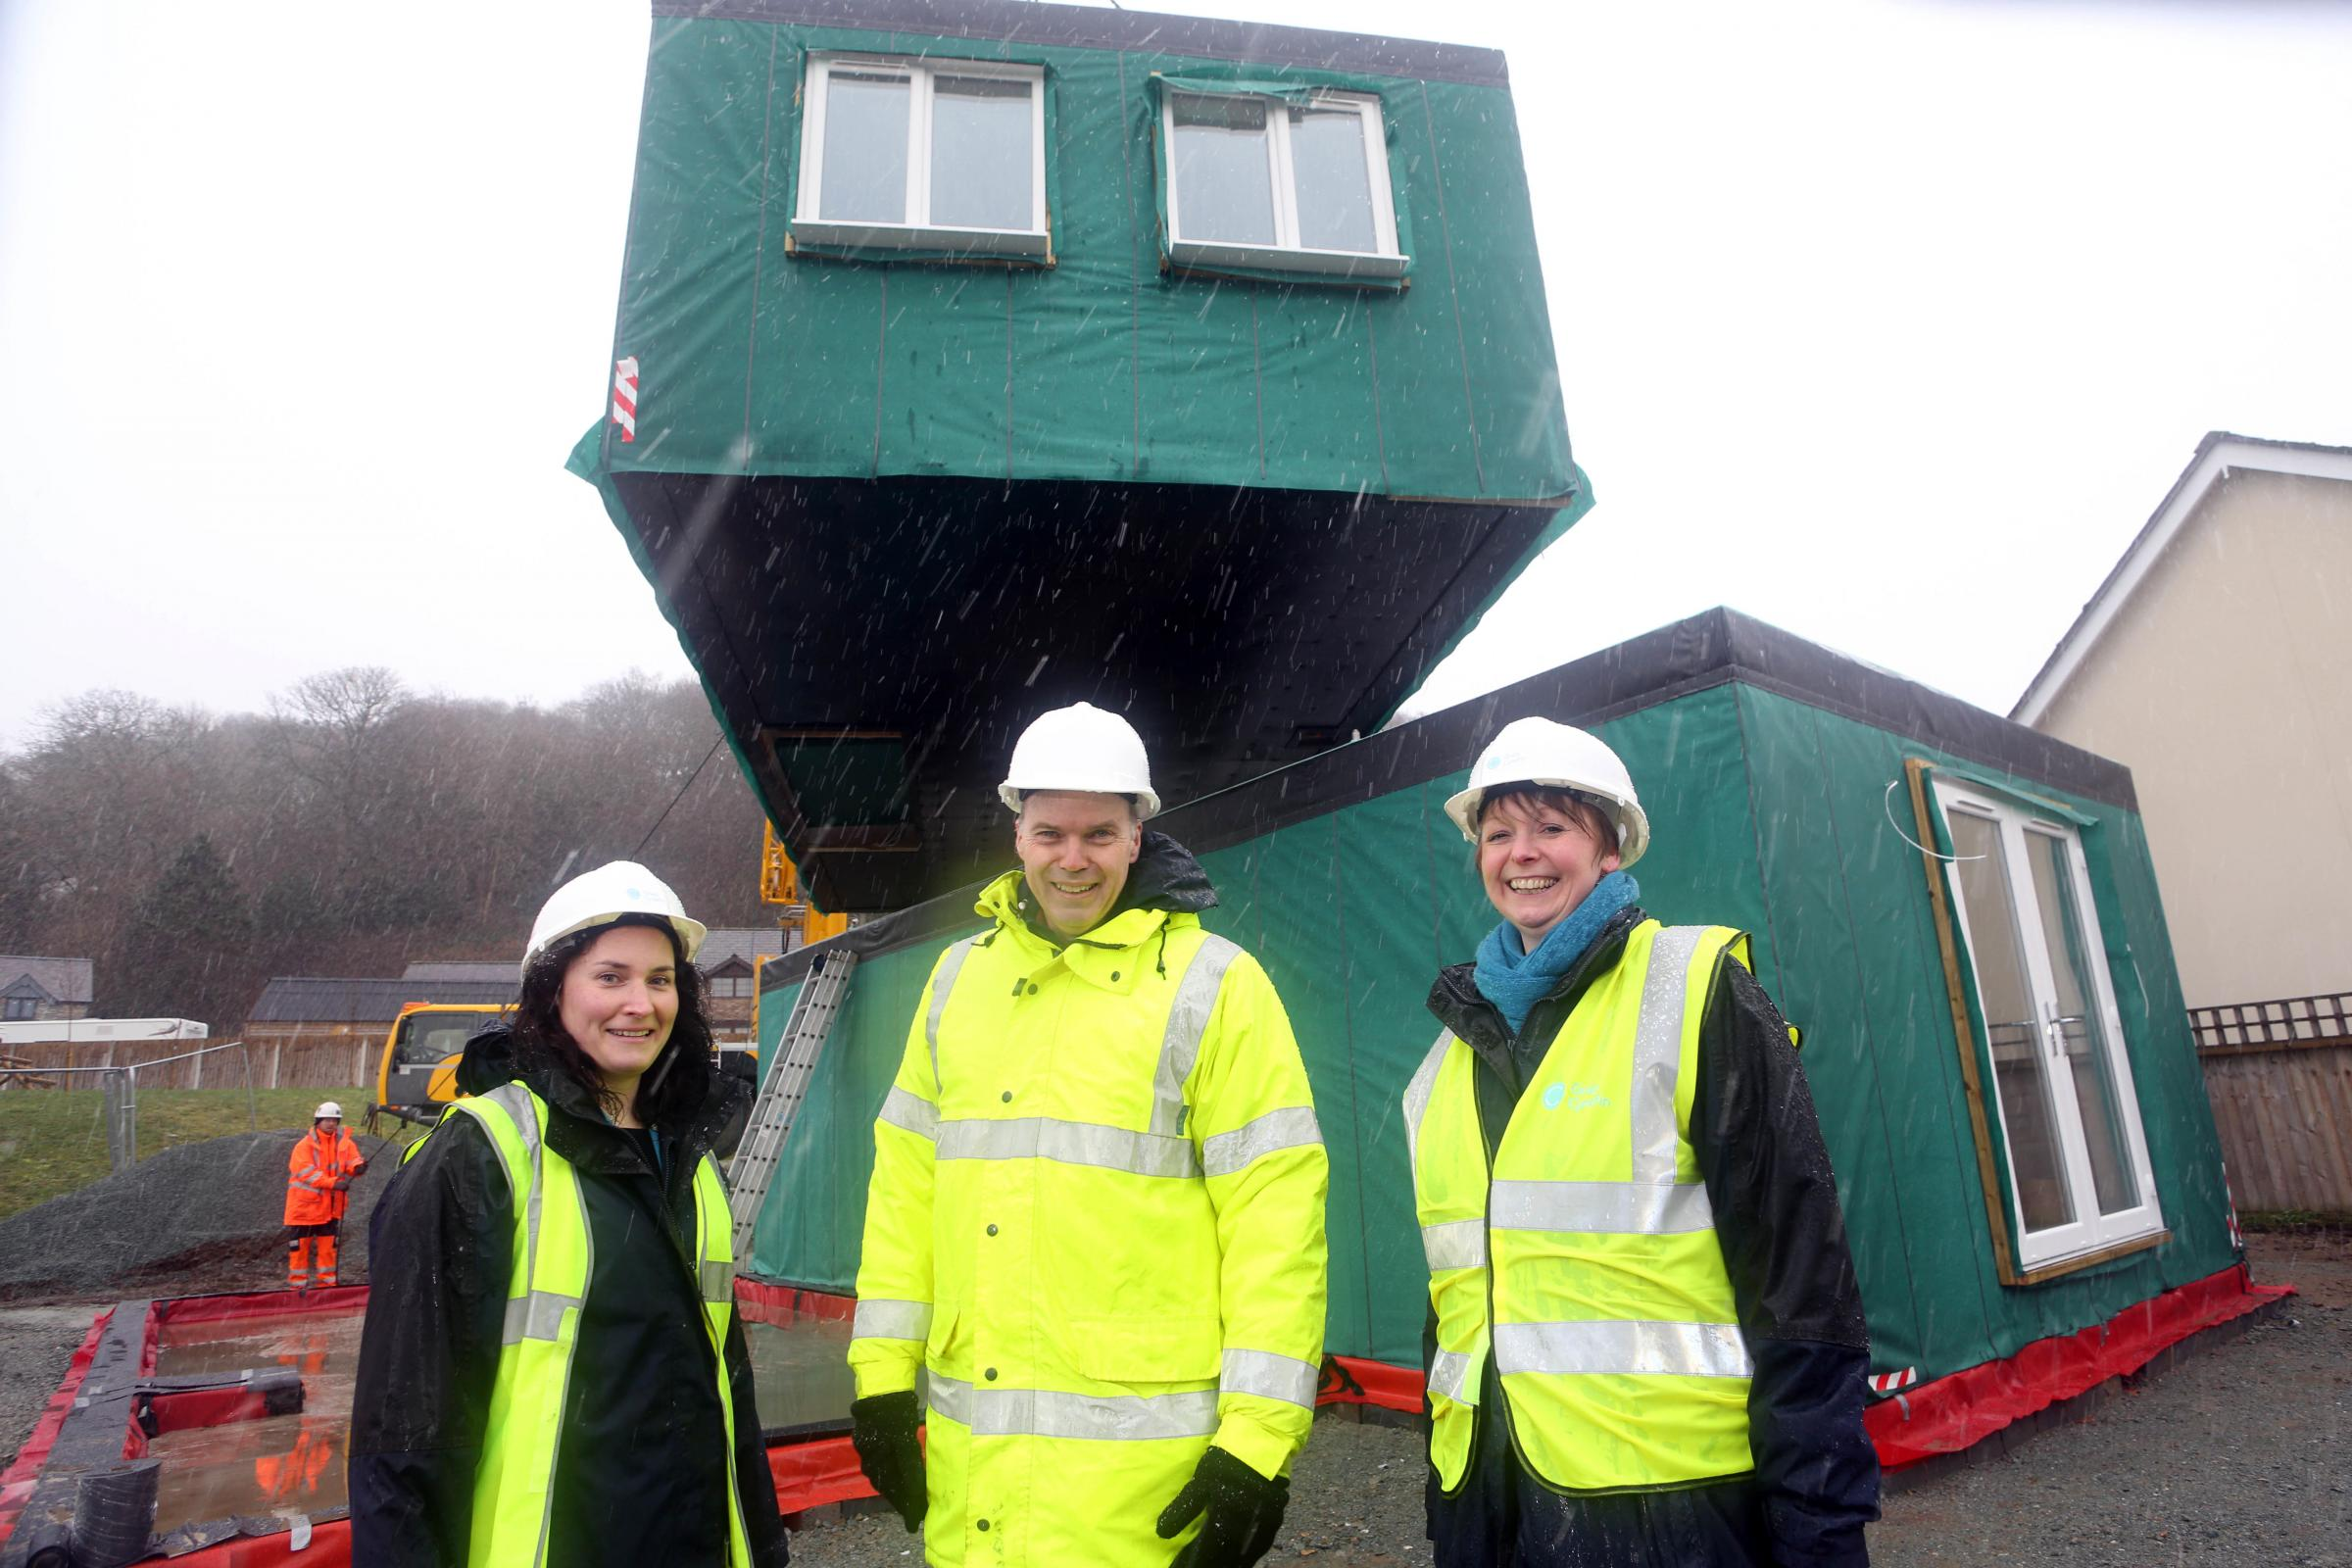 From left: Grwp Cynefin's Elain Ellis, Dylan Roberts, director of regeneration services, and Rhiannon Dafydd, oversee the new modular homes arriving on site at Cynwyd and being lifted into place.